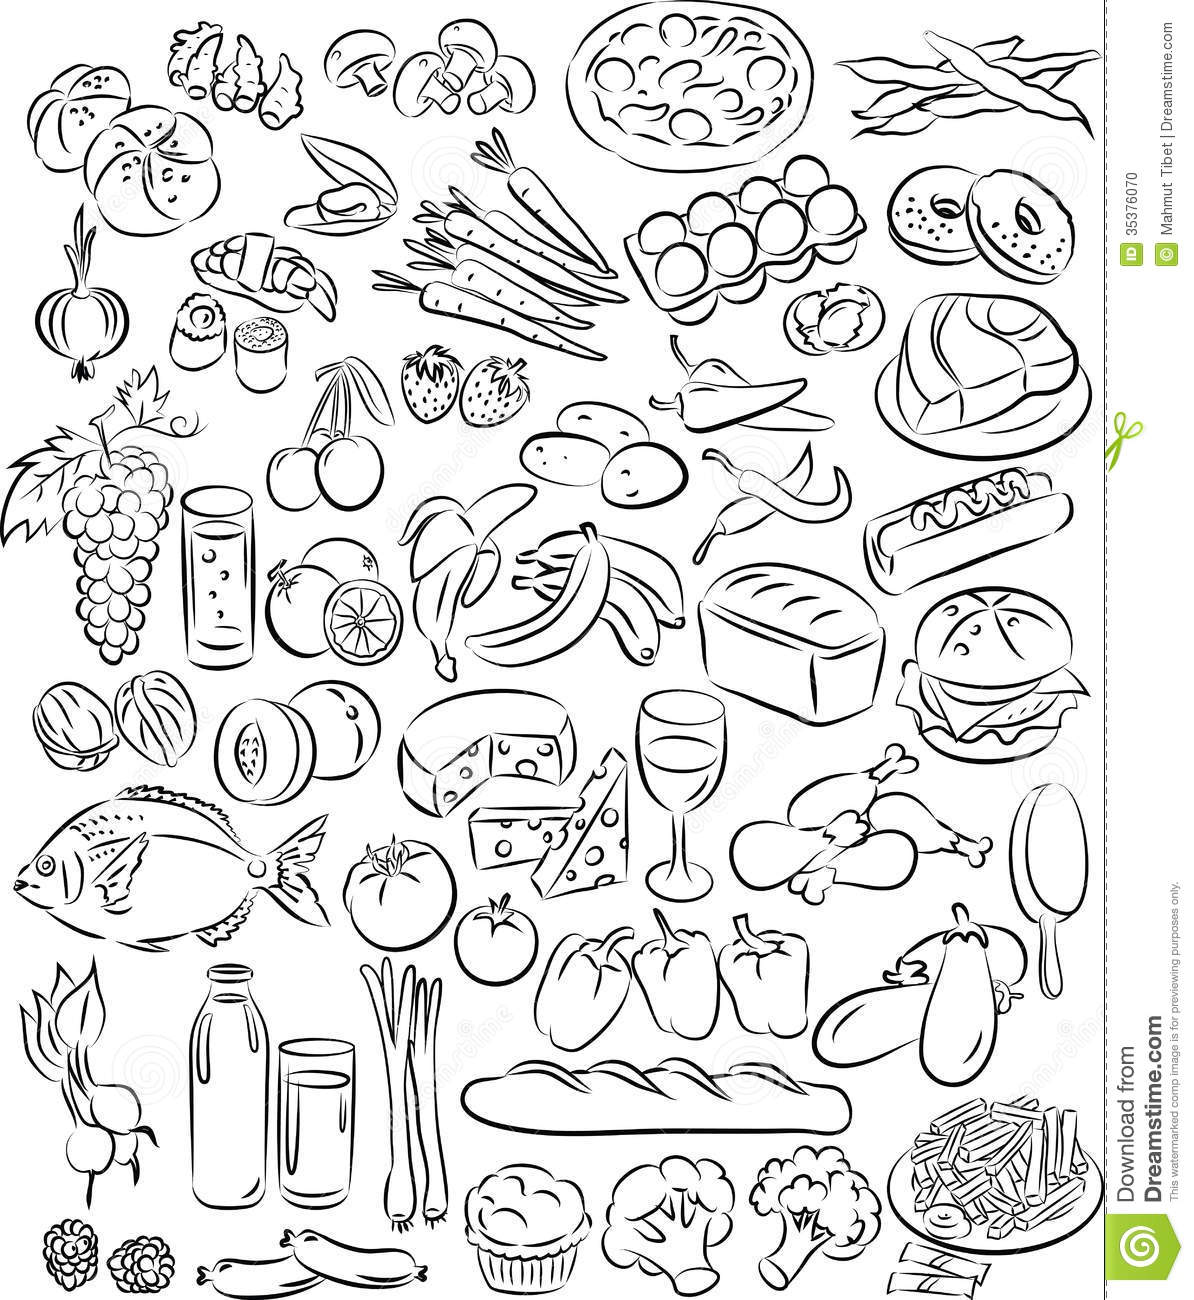 Black and White Food Vector